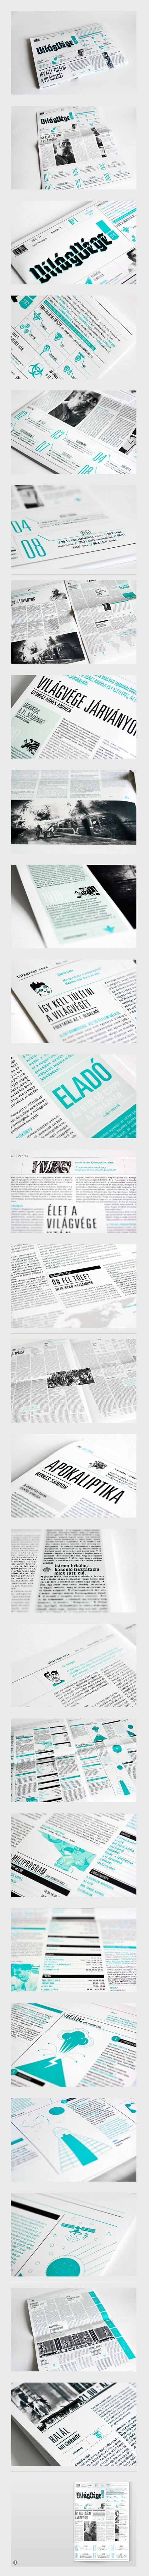 http://www.behance.net/gallery/Doomsday-2012-The-Last-Issue/5179773